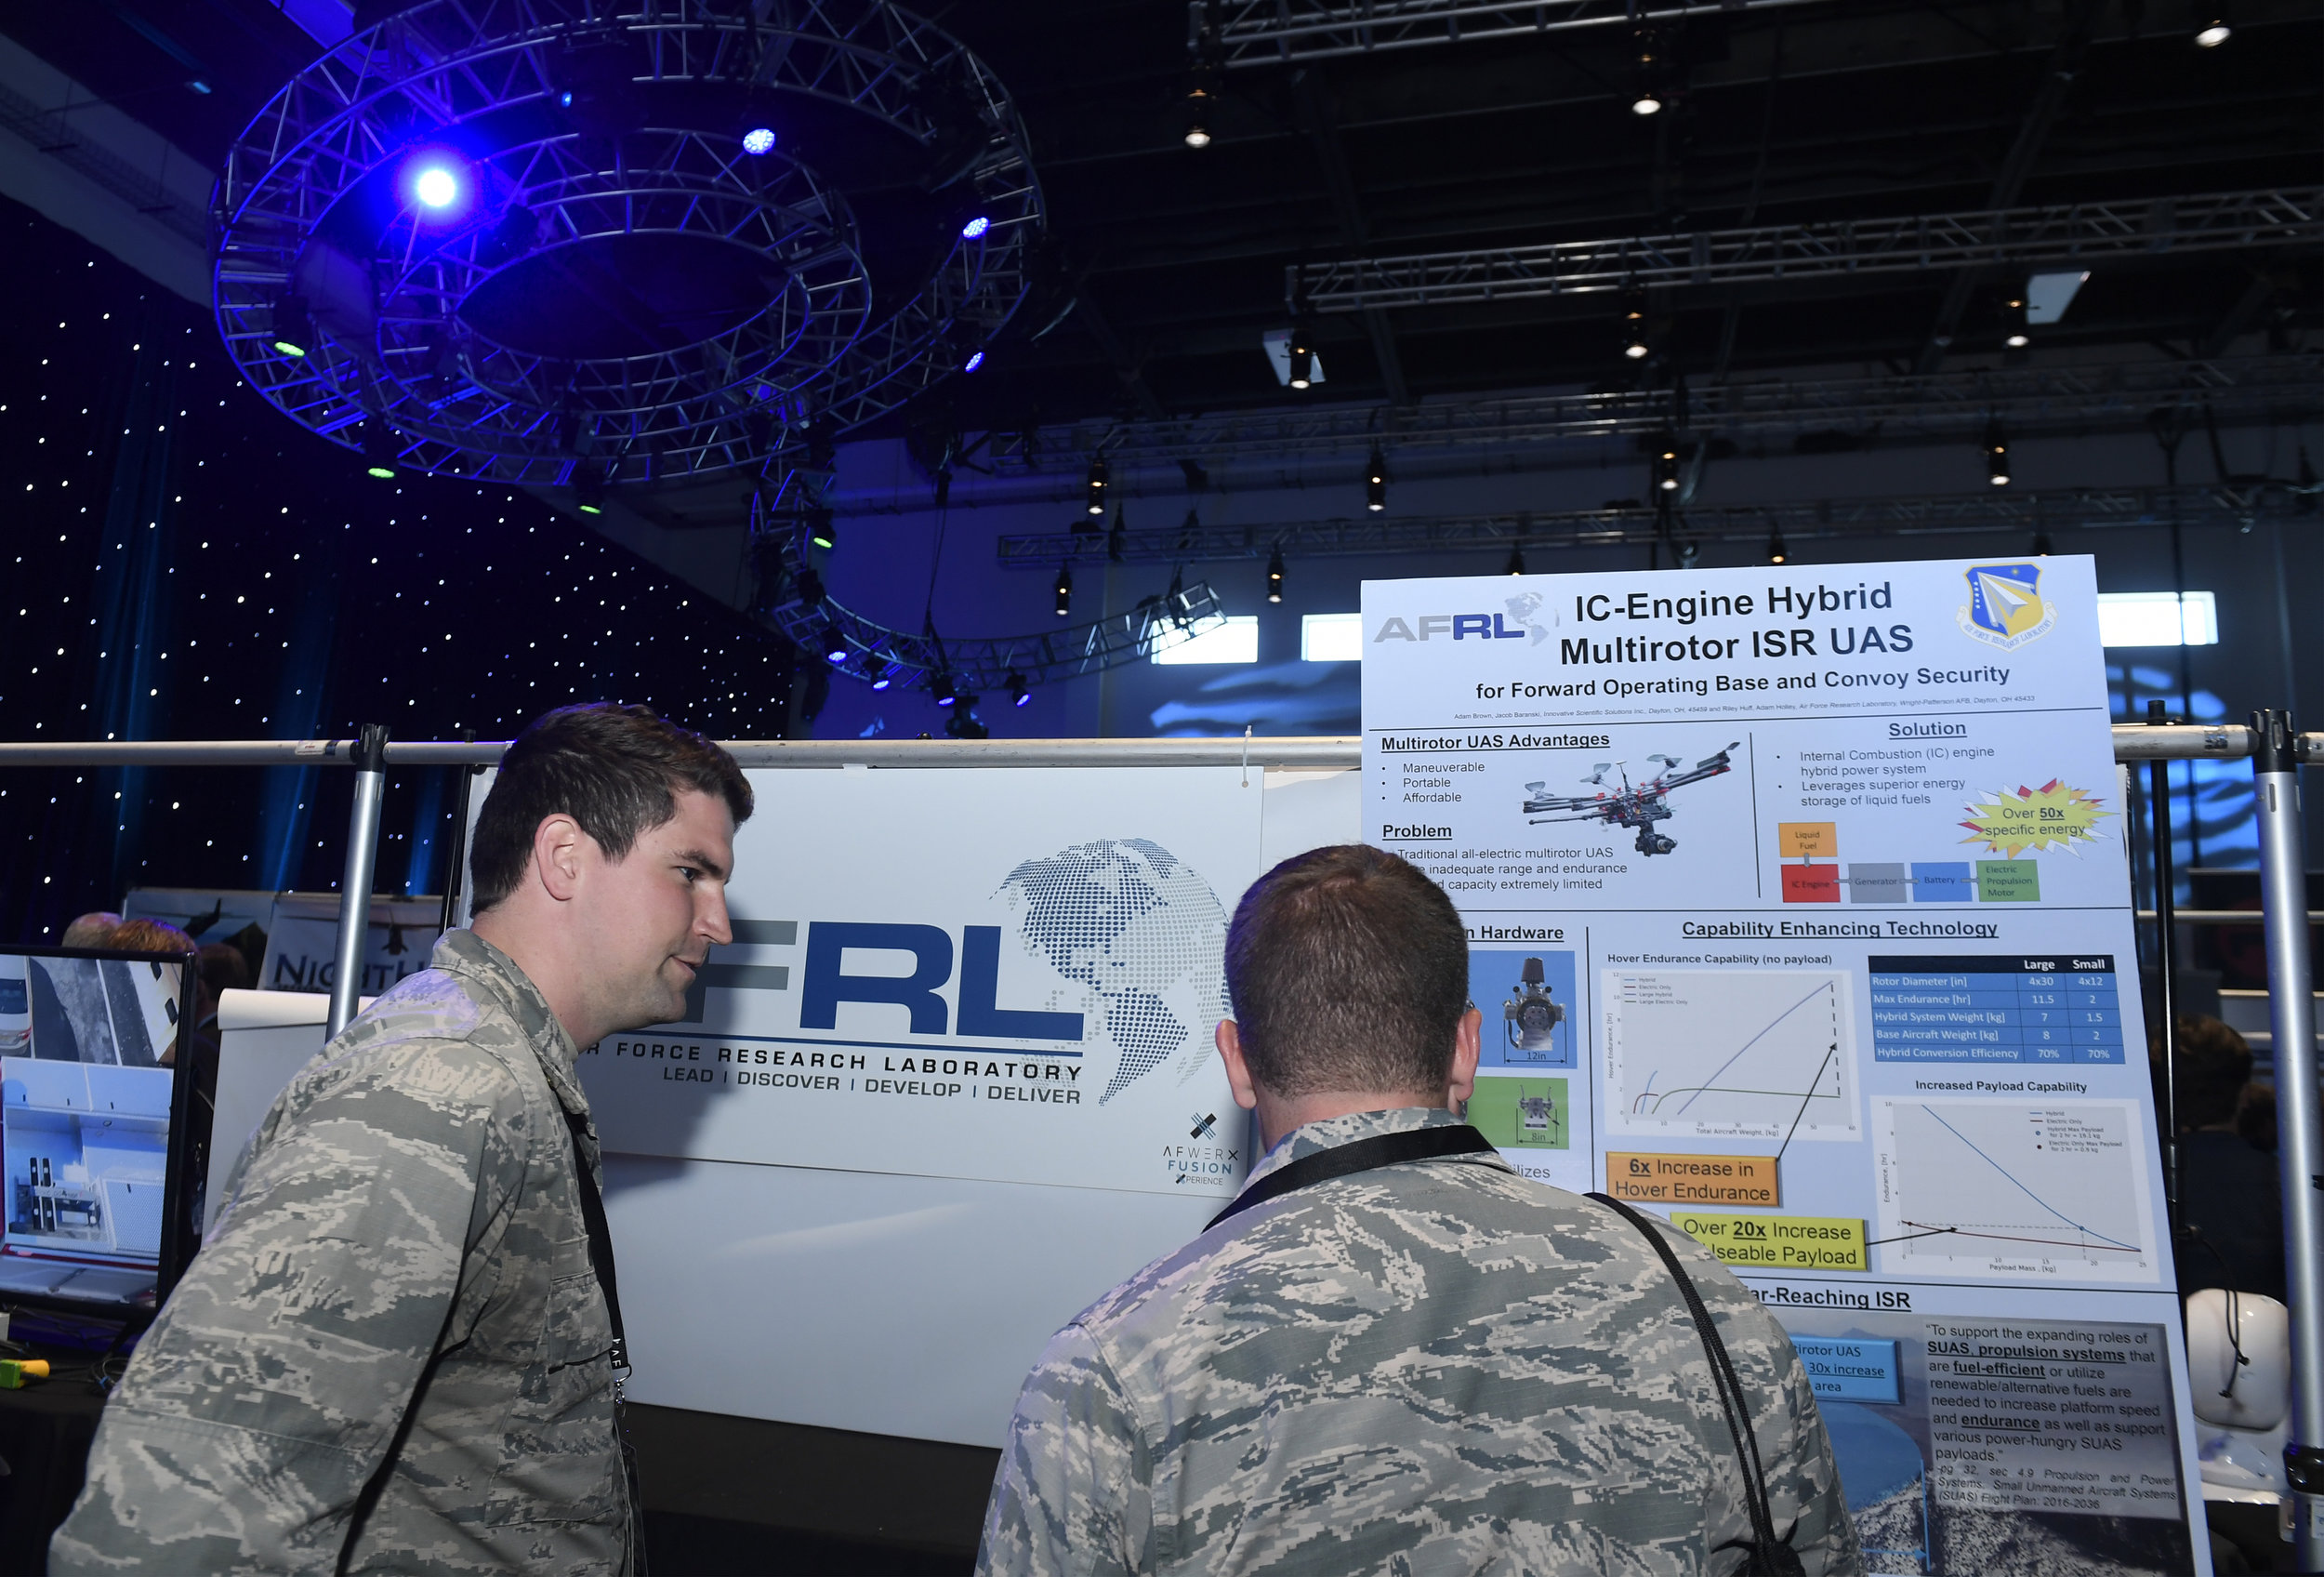 Innovators from the military, industry, investment, and academia meet at the annual AFWERX Fusion Xperience event in Las Vegas, to explore ways to use existing products to meet the U.S. Air Force's most-vexing challenges. Last year, the event focused on security solutions; this year, the event focused on Multi-Domain Operations (MDO). Photo: AFWERX Vegas